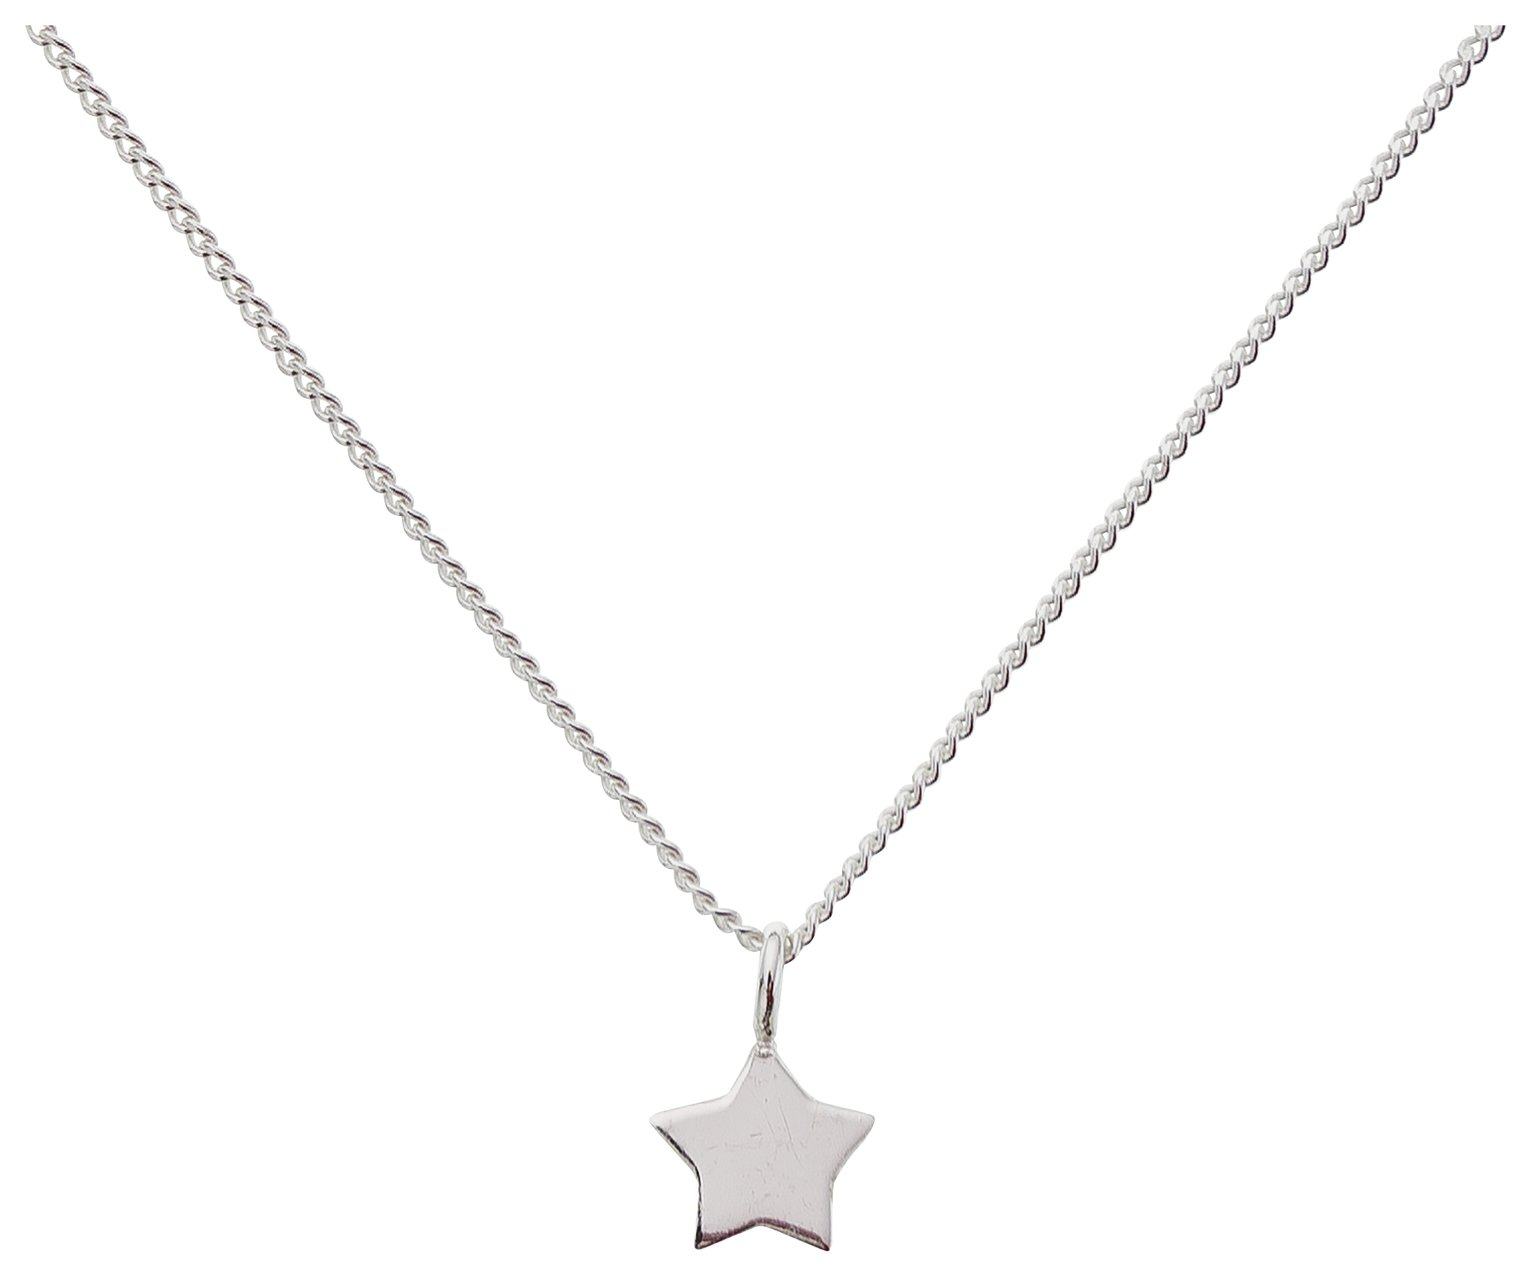 Image of Revere Kid's Sterling Silver Star Pendant